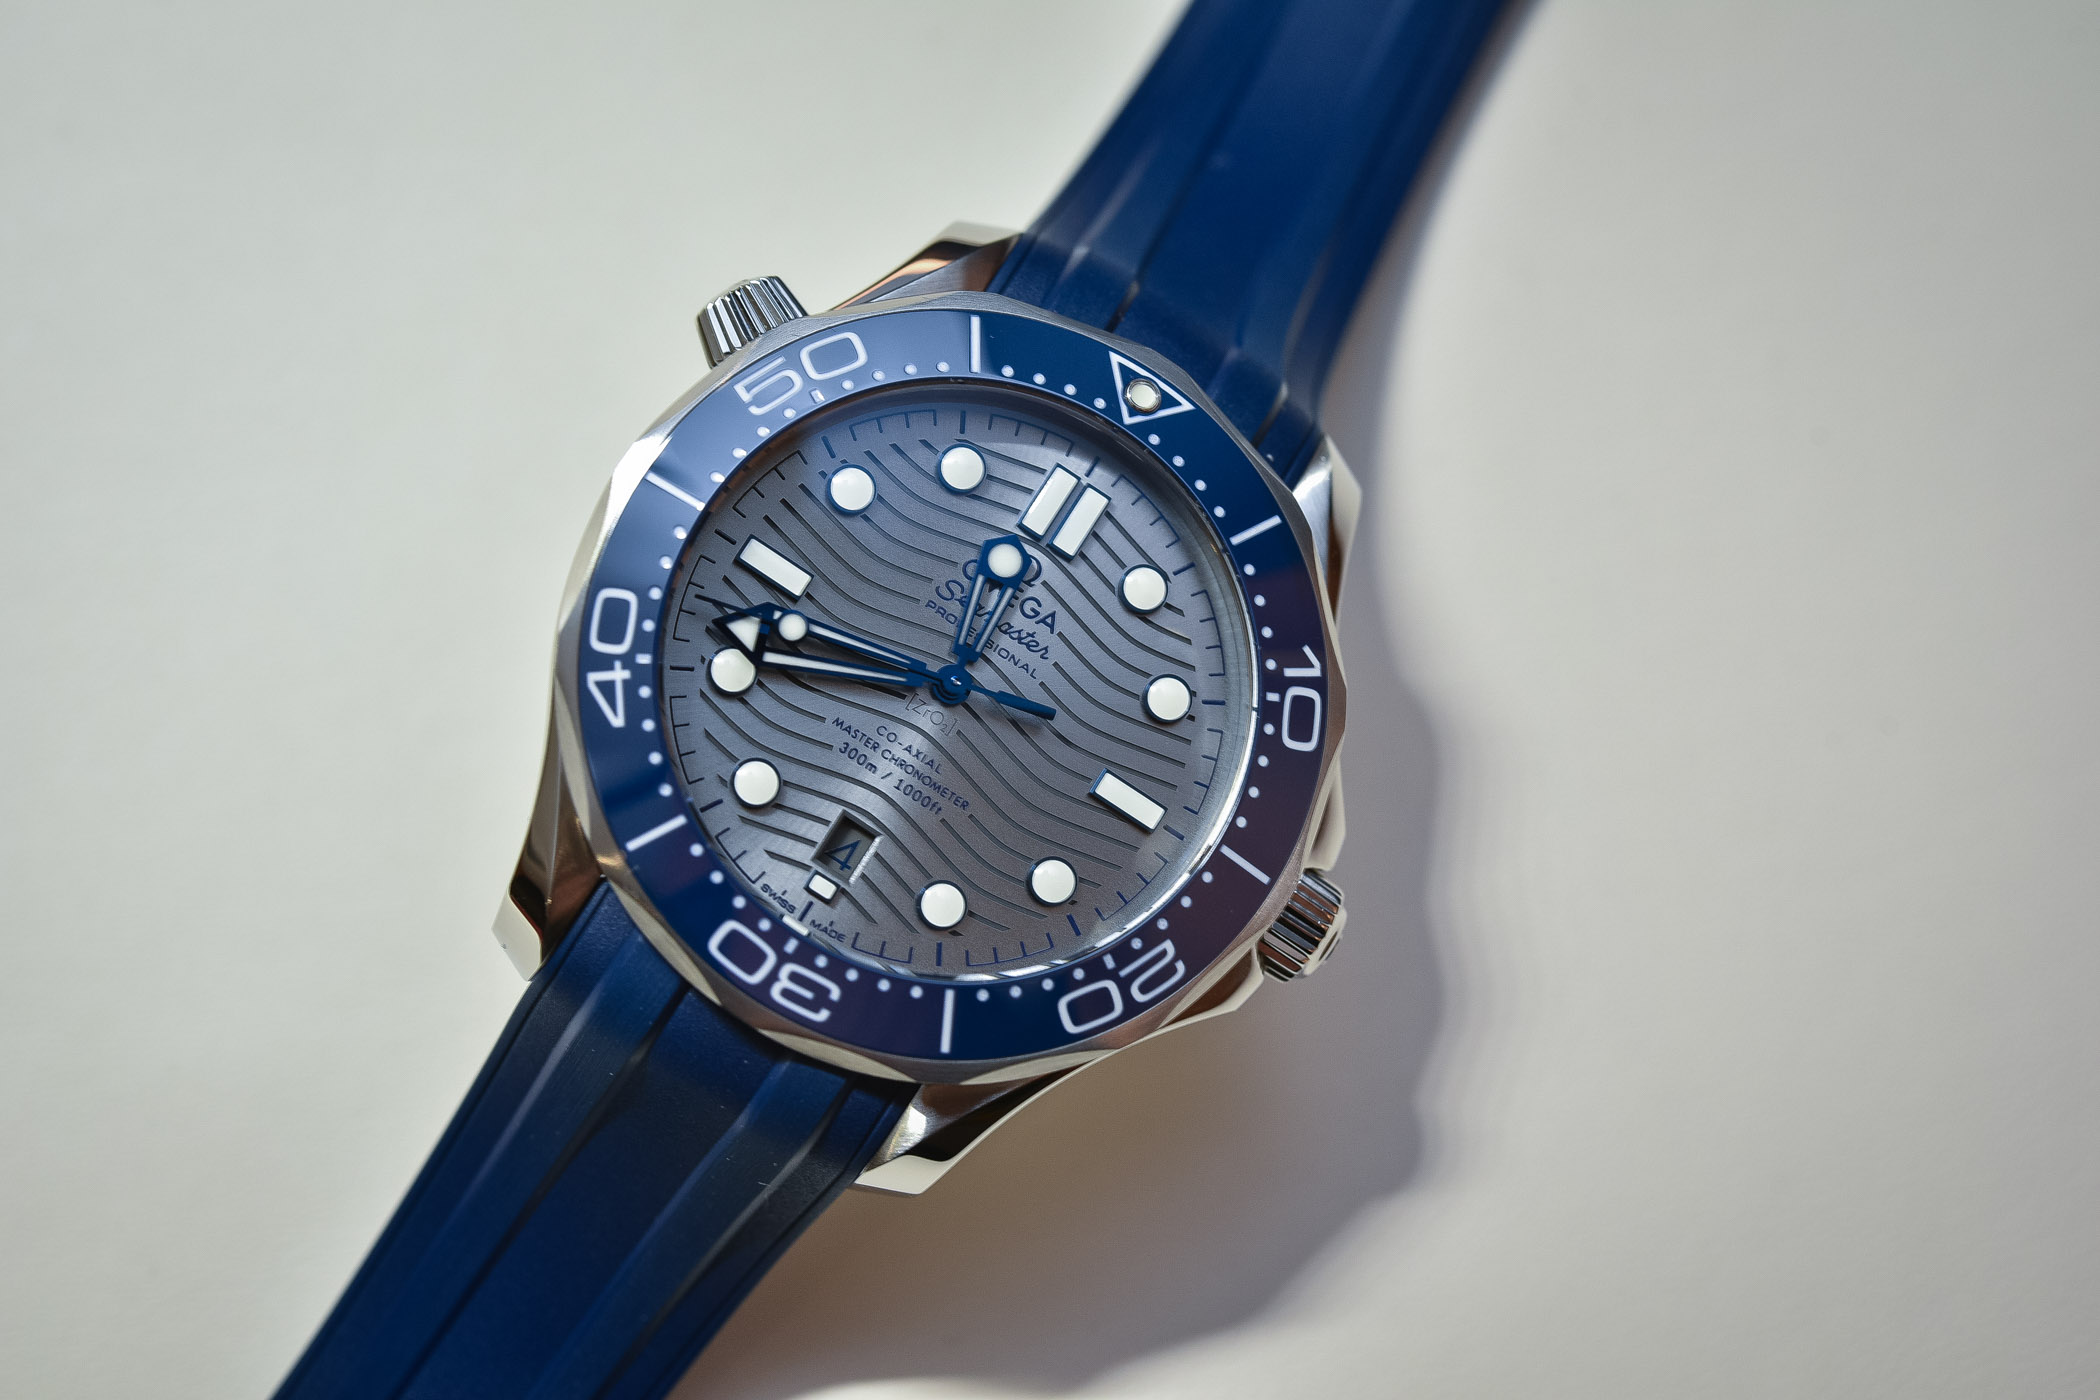 81a0fcb96bb Hands-On - Omega Seamaster Diver 300M Master Chronometer Baselworld ...